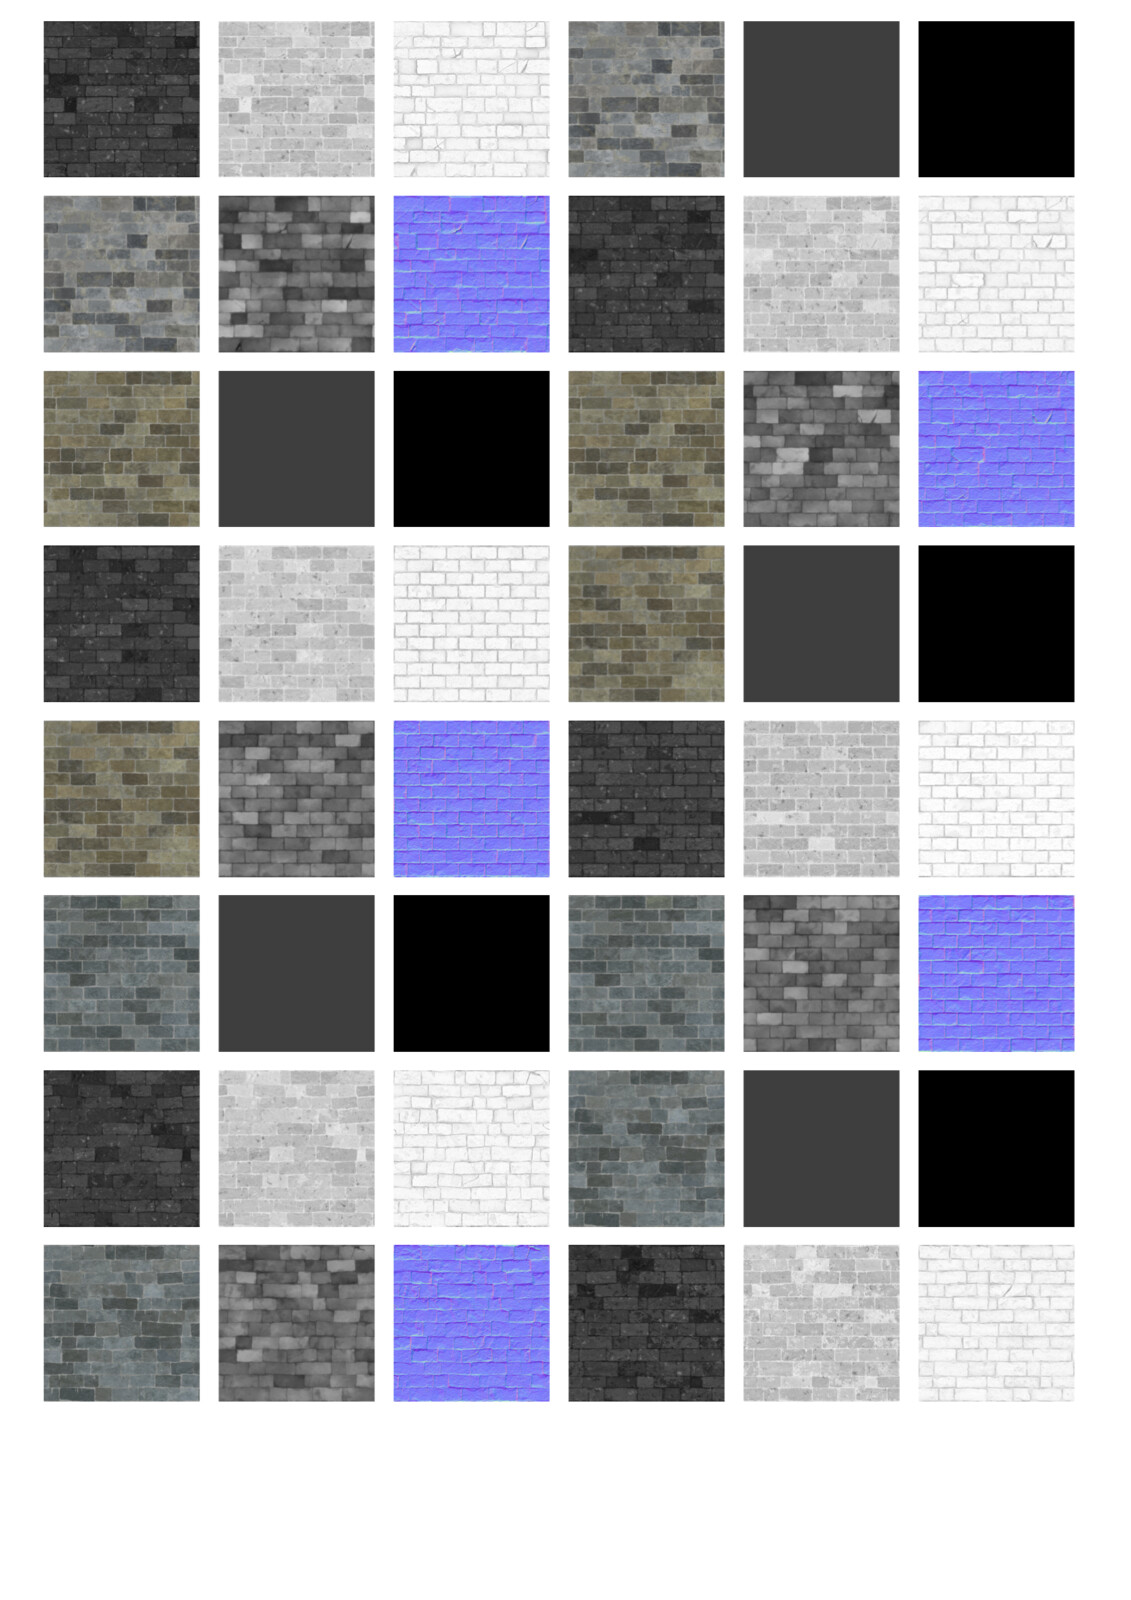 Here is one of two of an overview of many of the bespoke materials individual texture maps I created for JGA - this doesn't show the in-ArchiCAD only vector artwork I created and associated with these materials